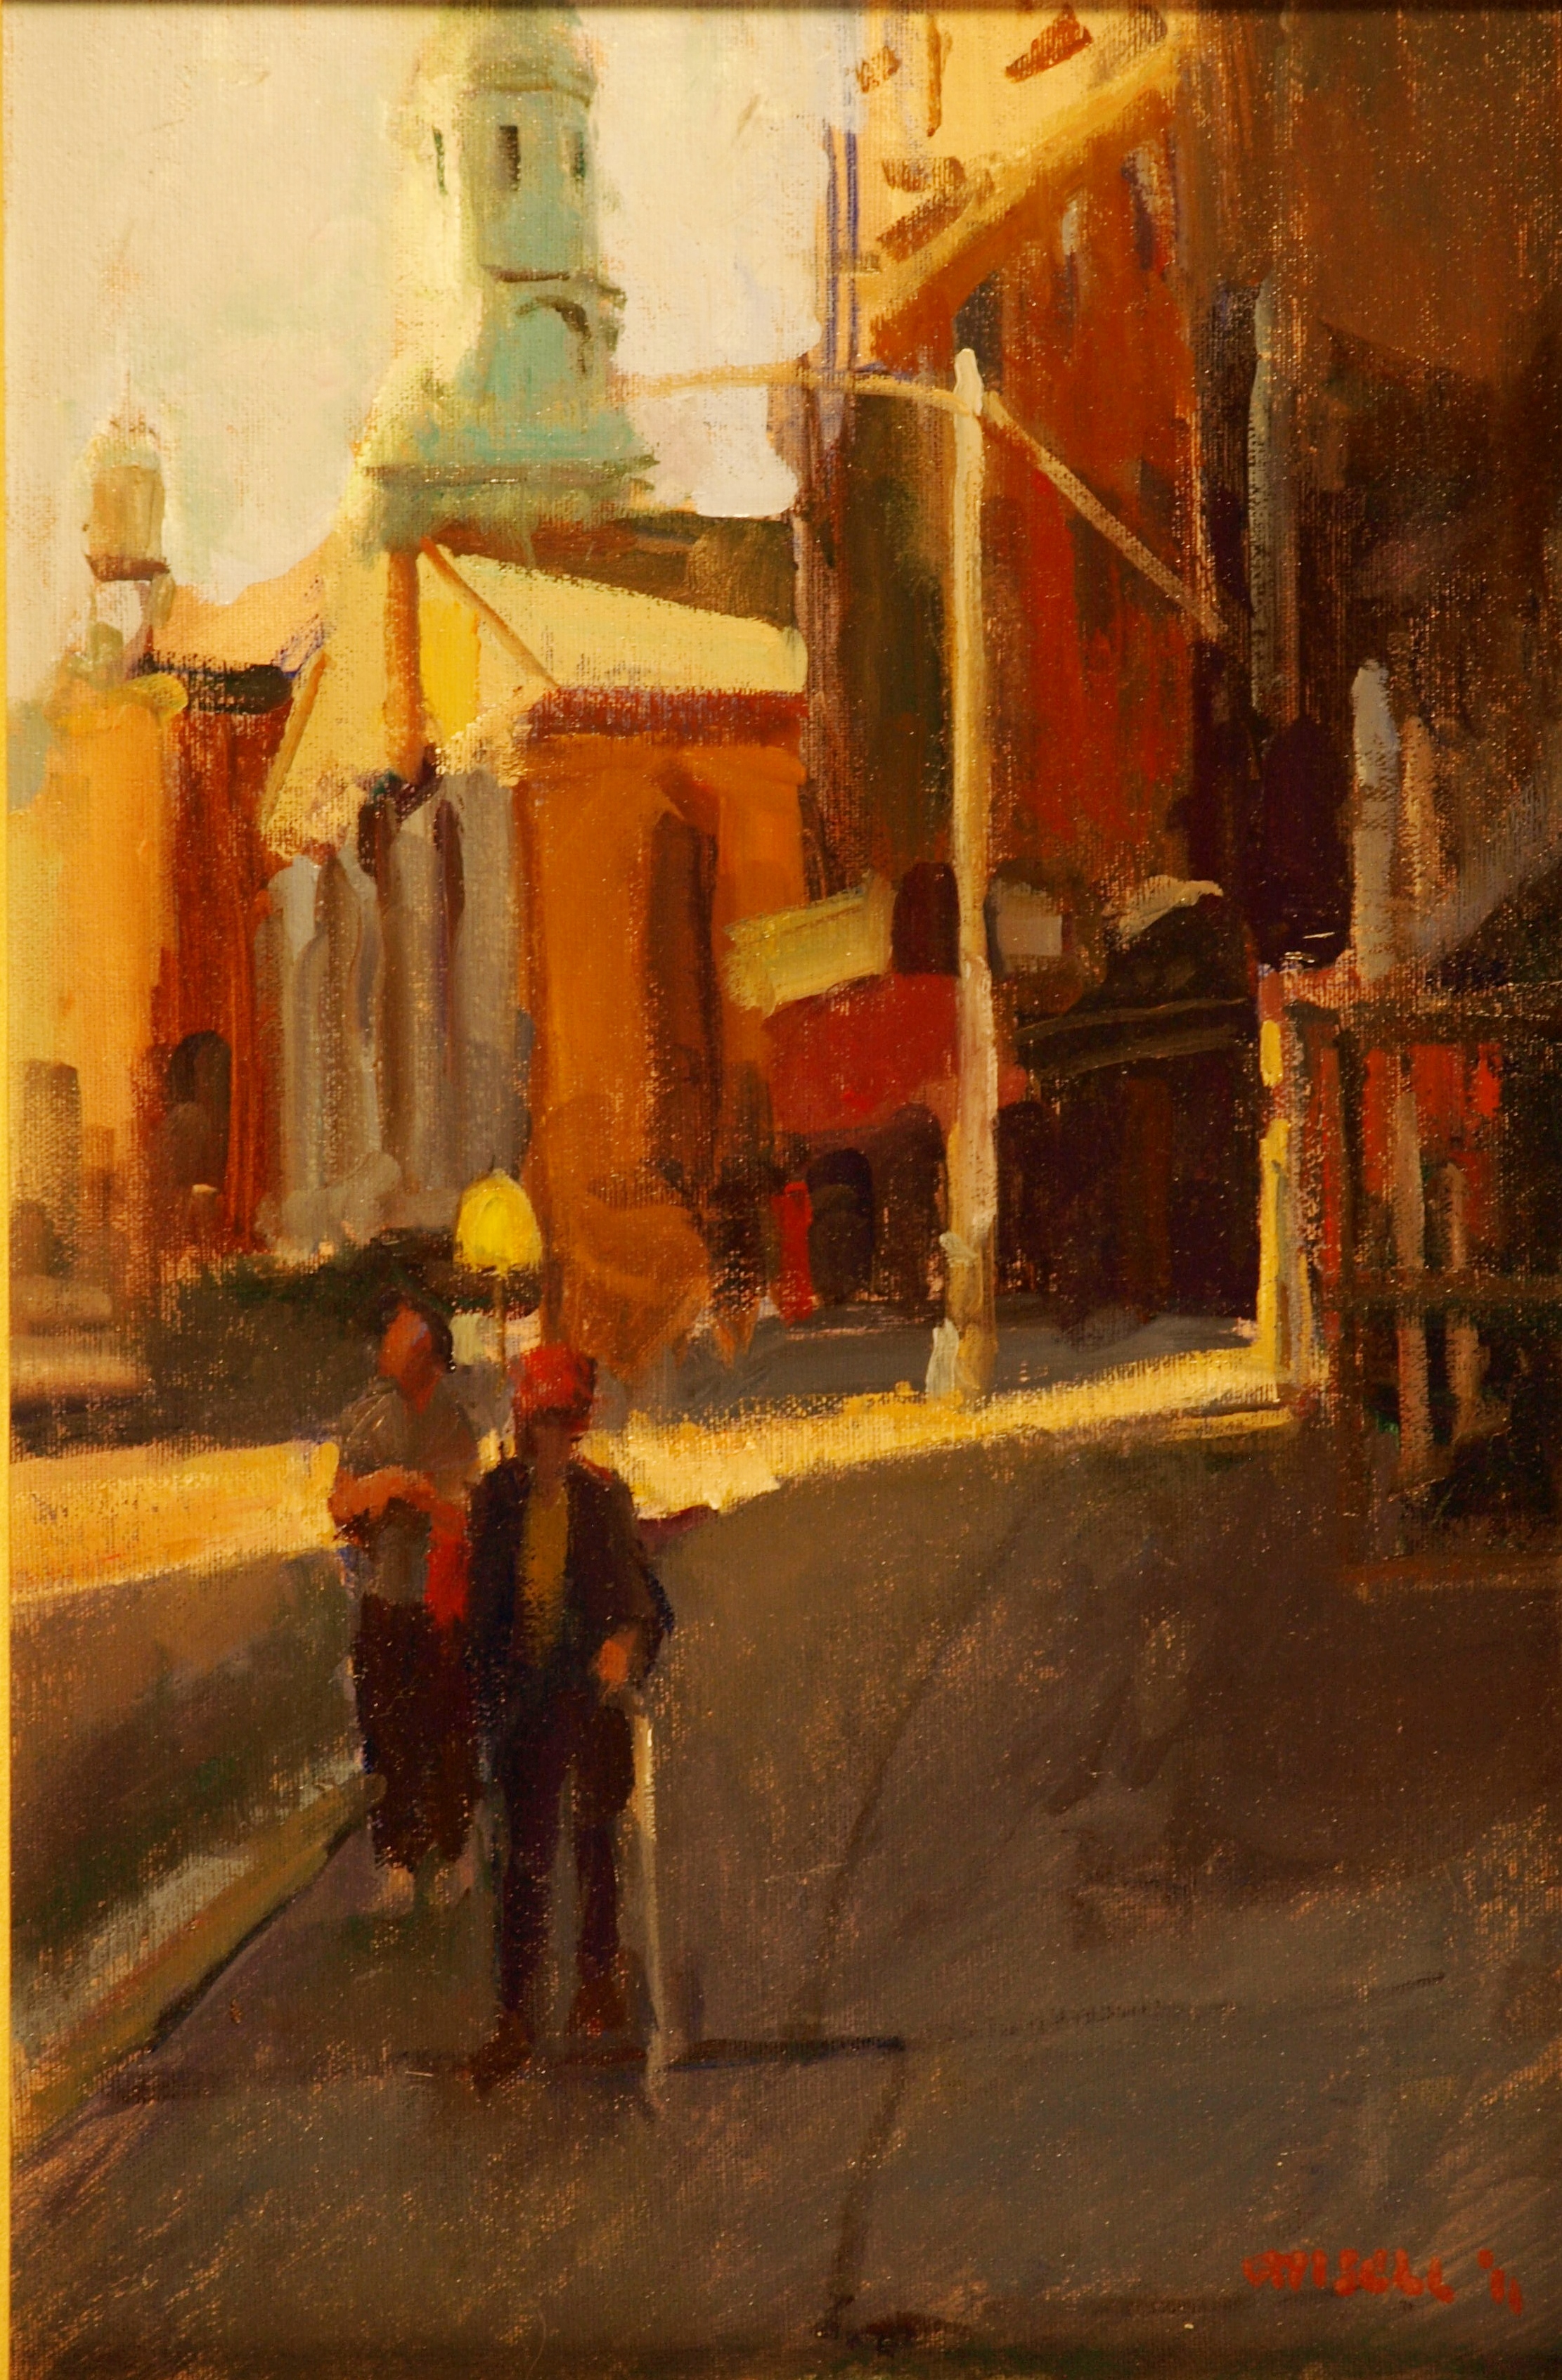 Lower Mott Street, Oil on Canvas on Panel, 18 x 12 Inches, by Susan Grisell, $275